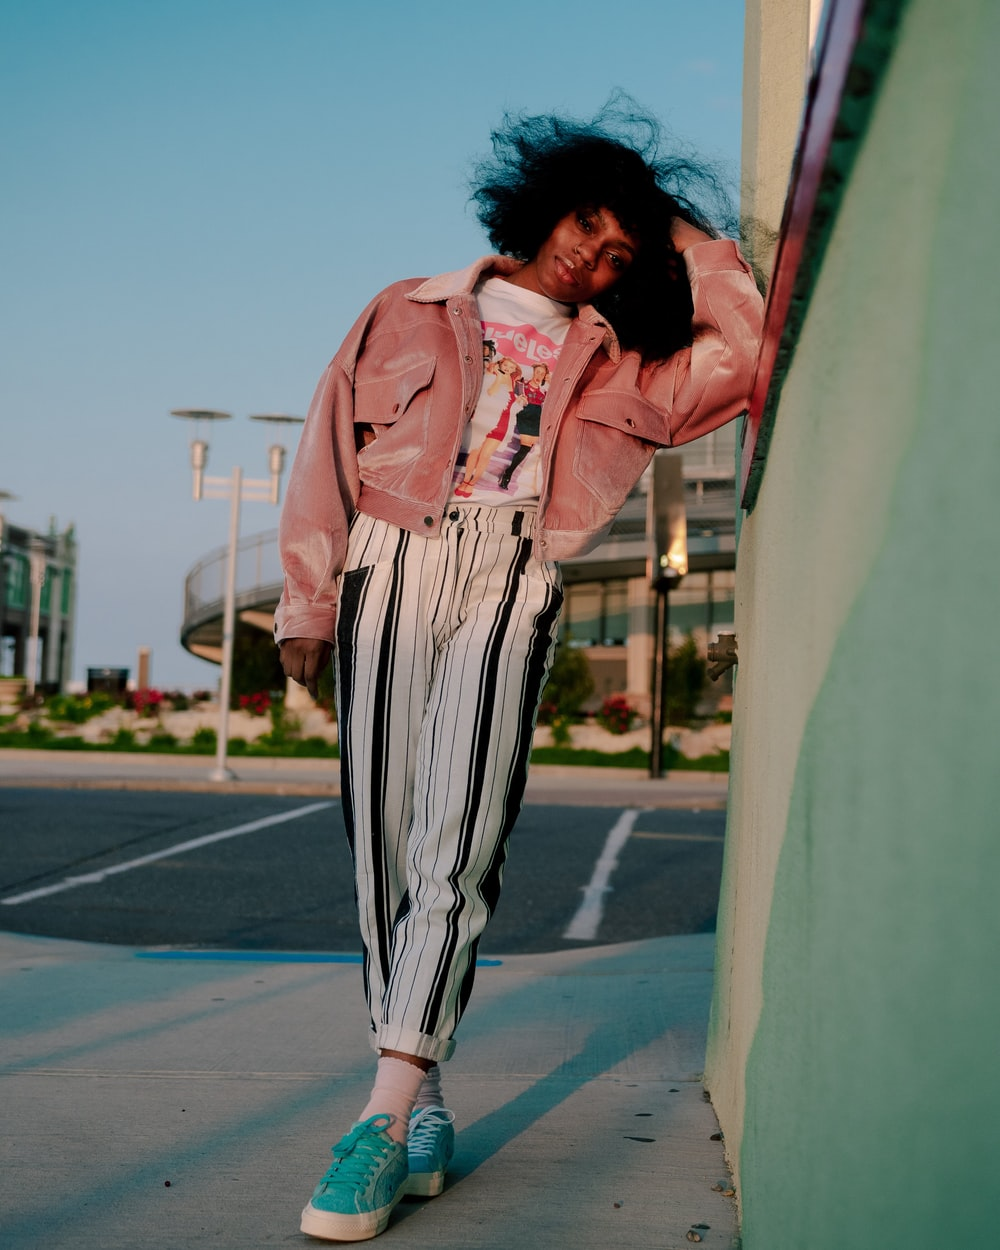 woman in pink jacket and black and white striped pants standing on gray concrete floor during